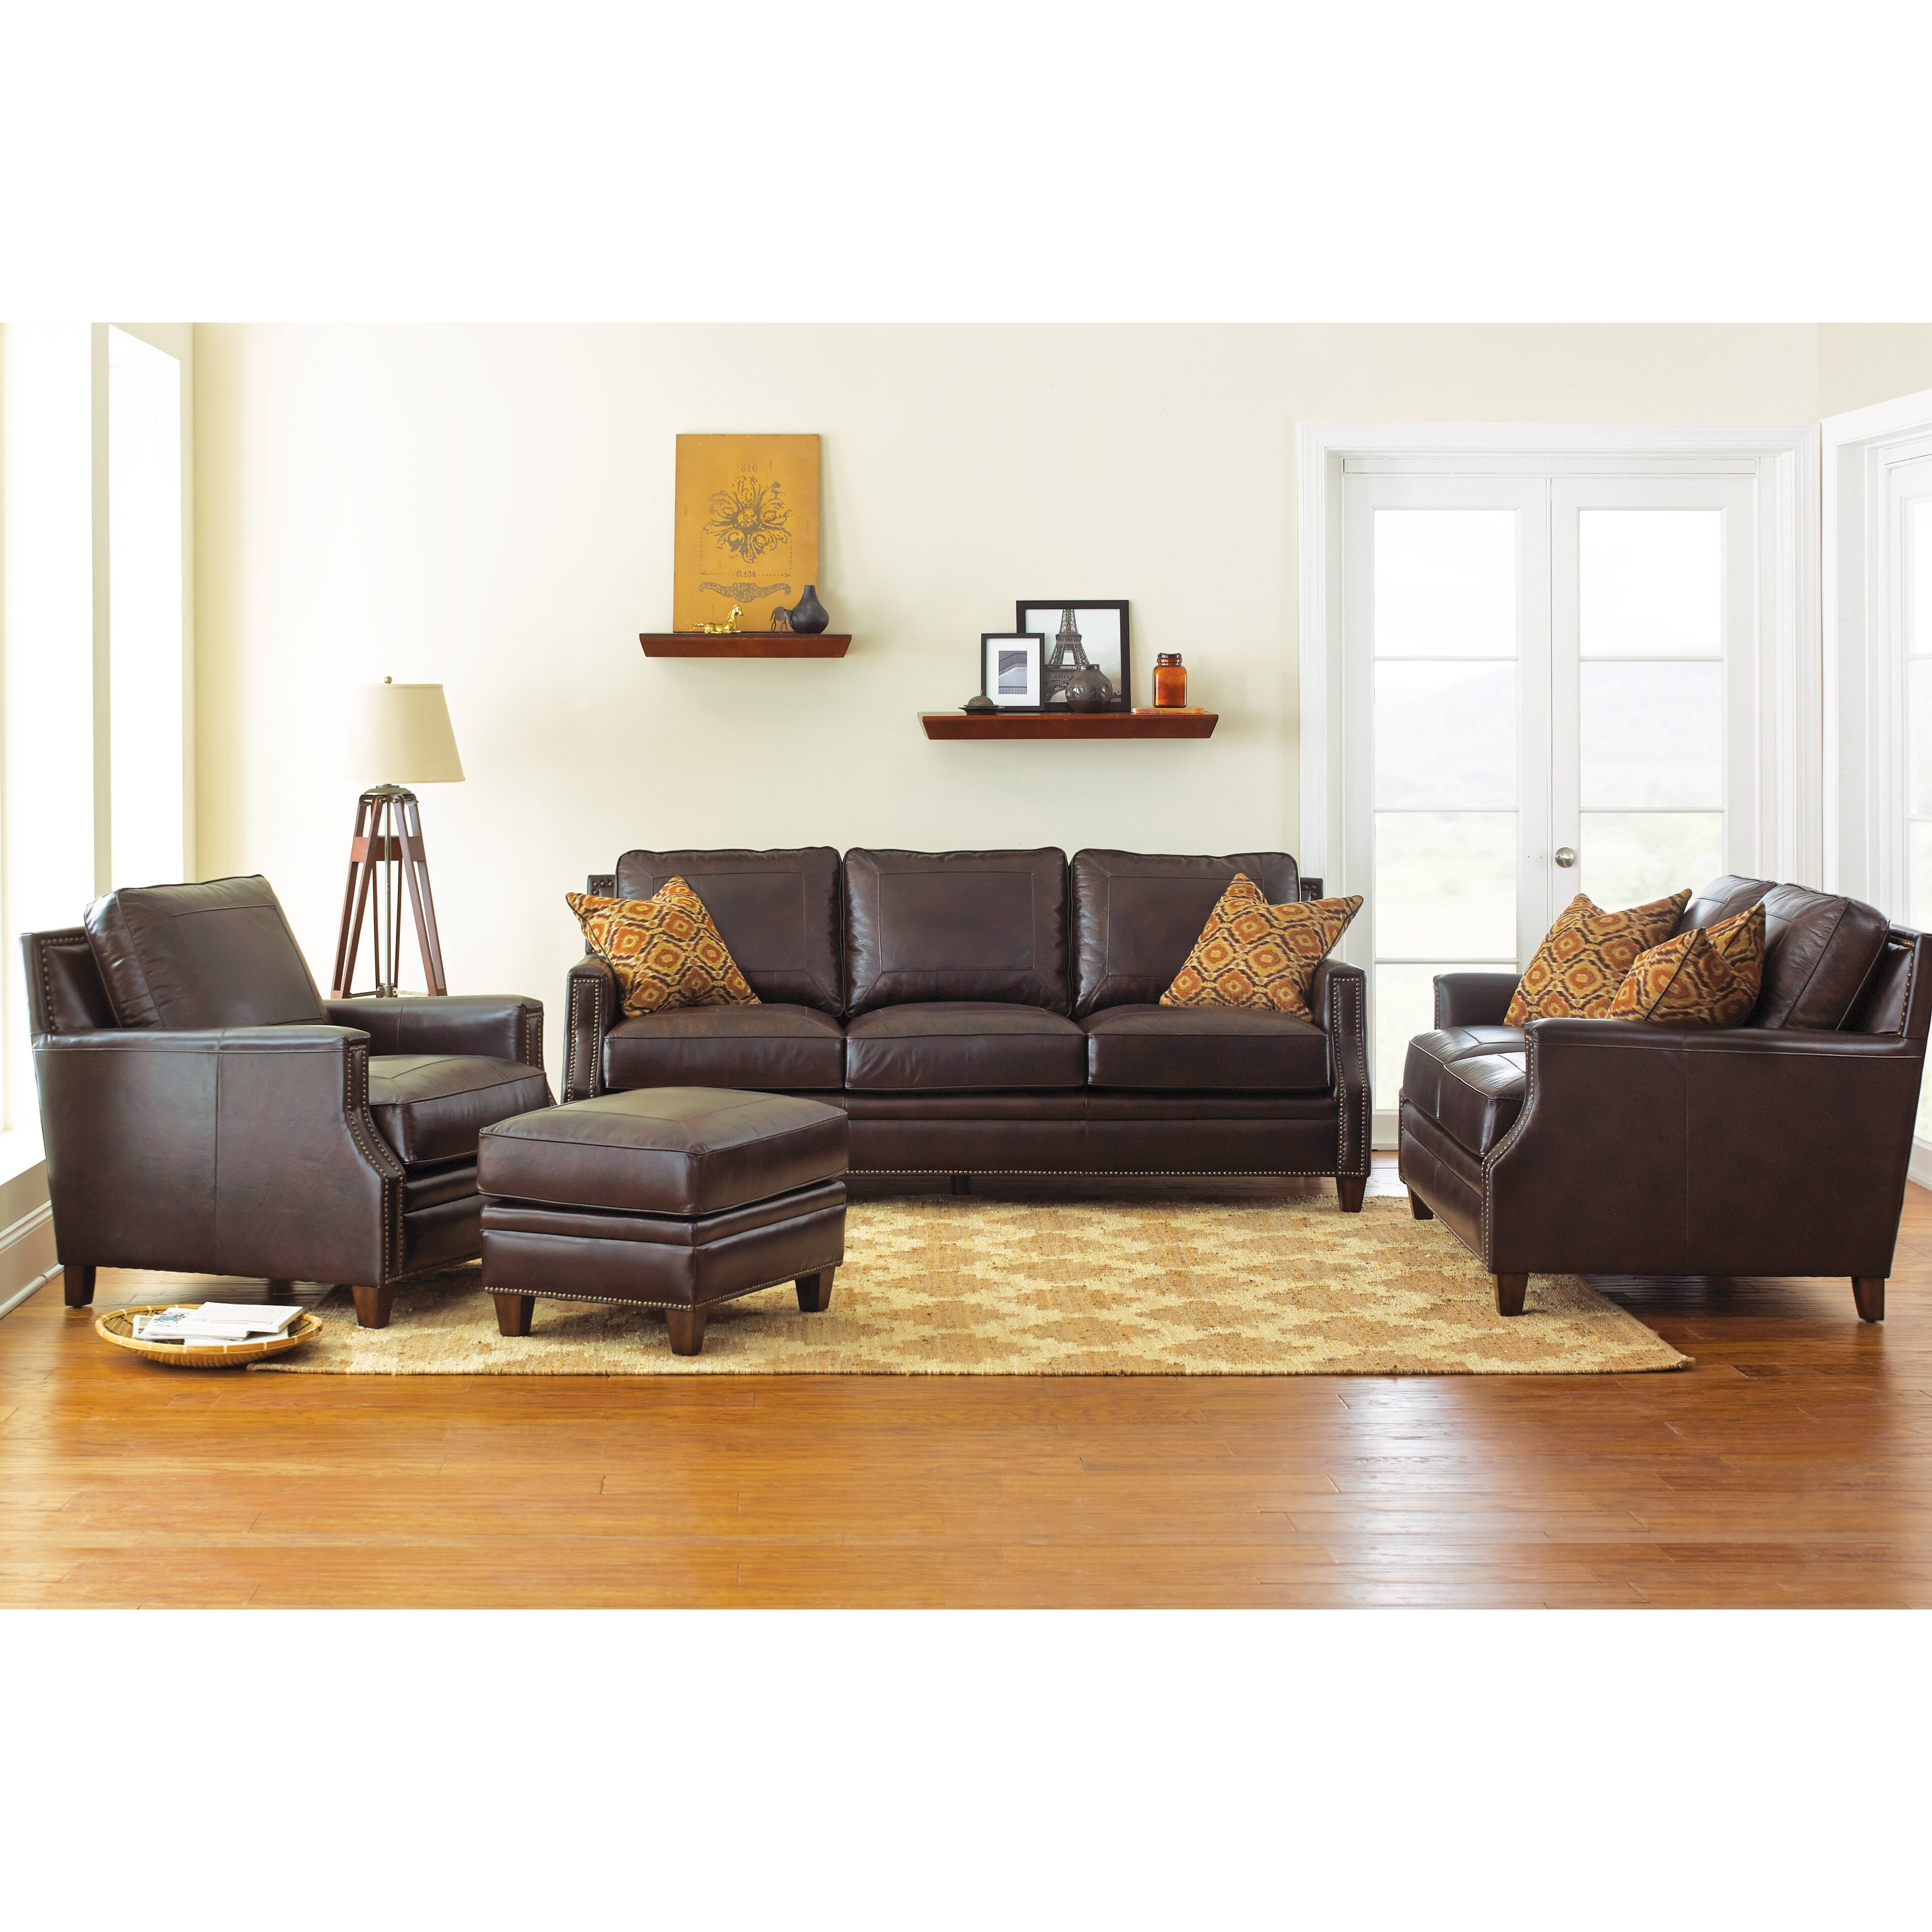 Darby home co gravely 4 piece living room set wayfair for 4 piece living room set